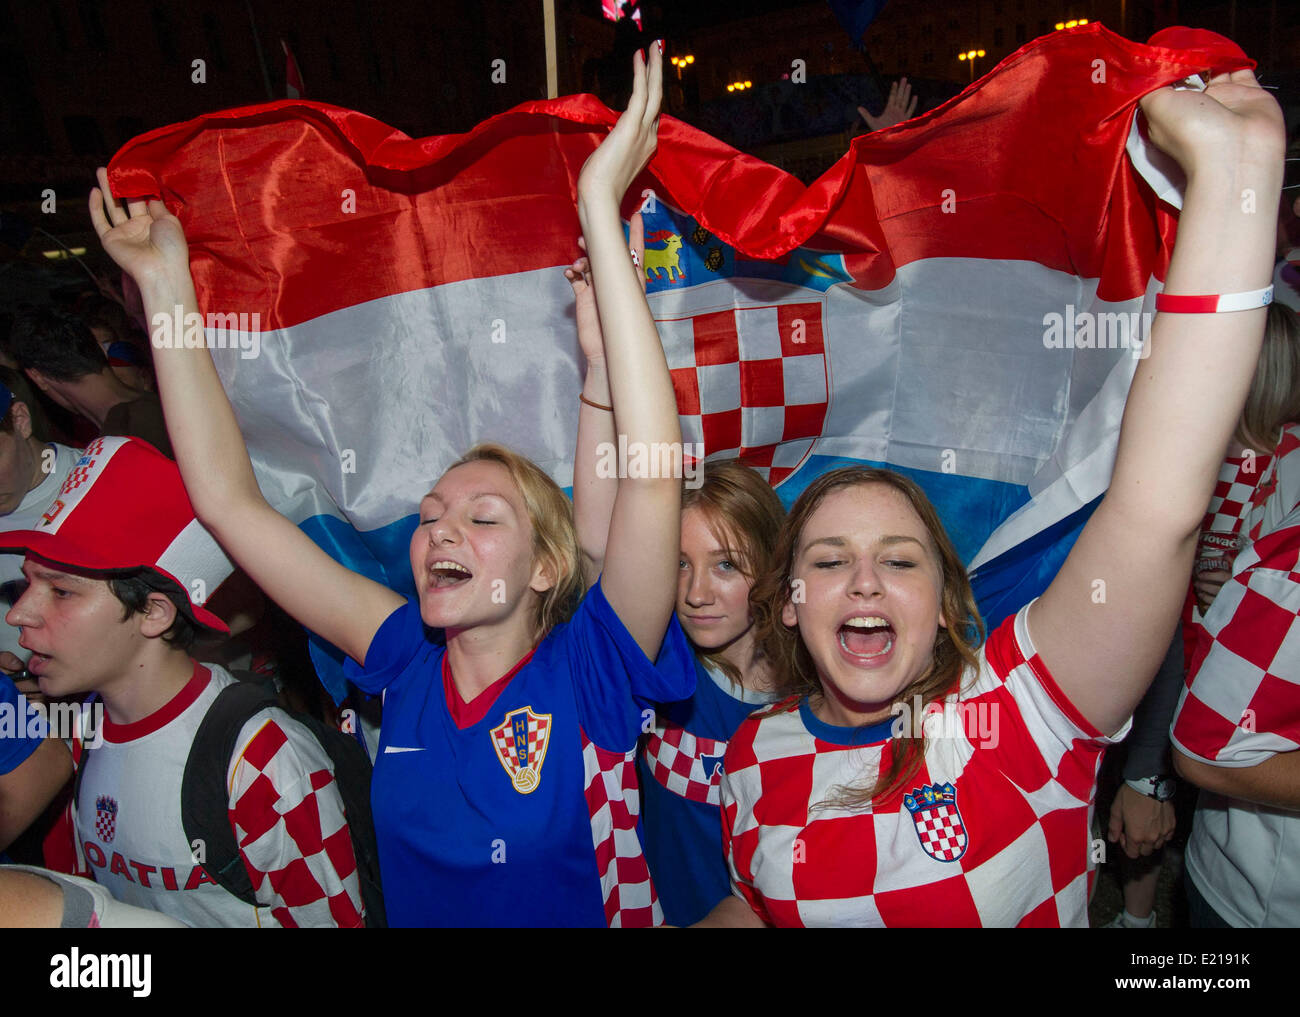 Football Fans Body Paint World Cup ~ Body Painting World Cup |Croatia Soccer Fans